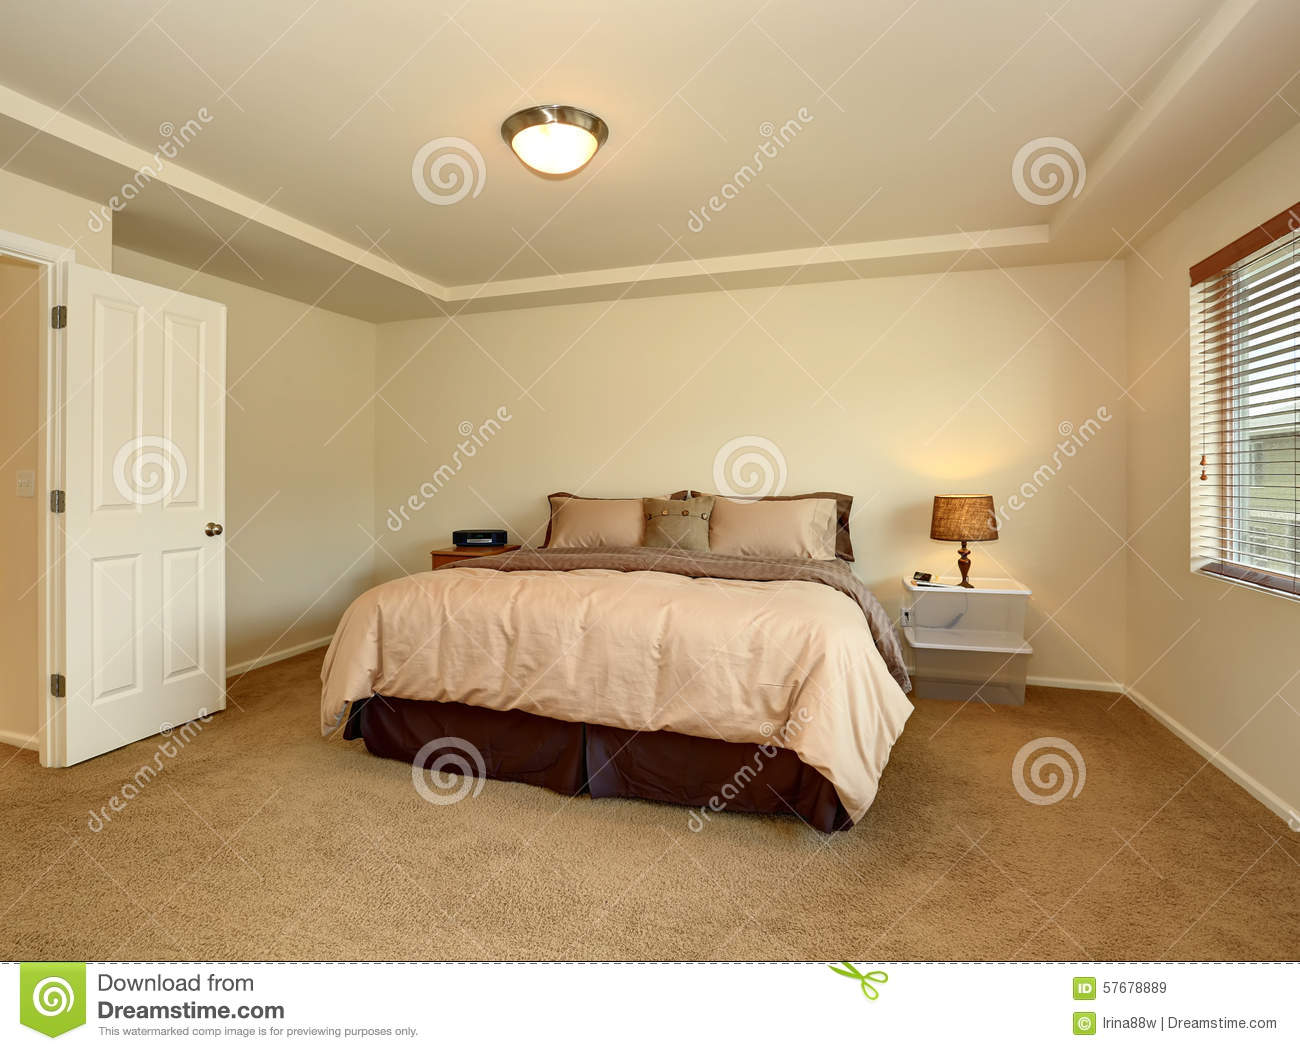 Nice Master Bedroom With Simple Decor Stock Image Image Of House Modern 57678889